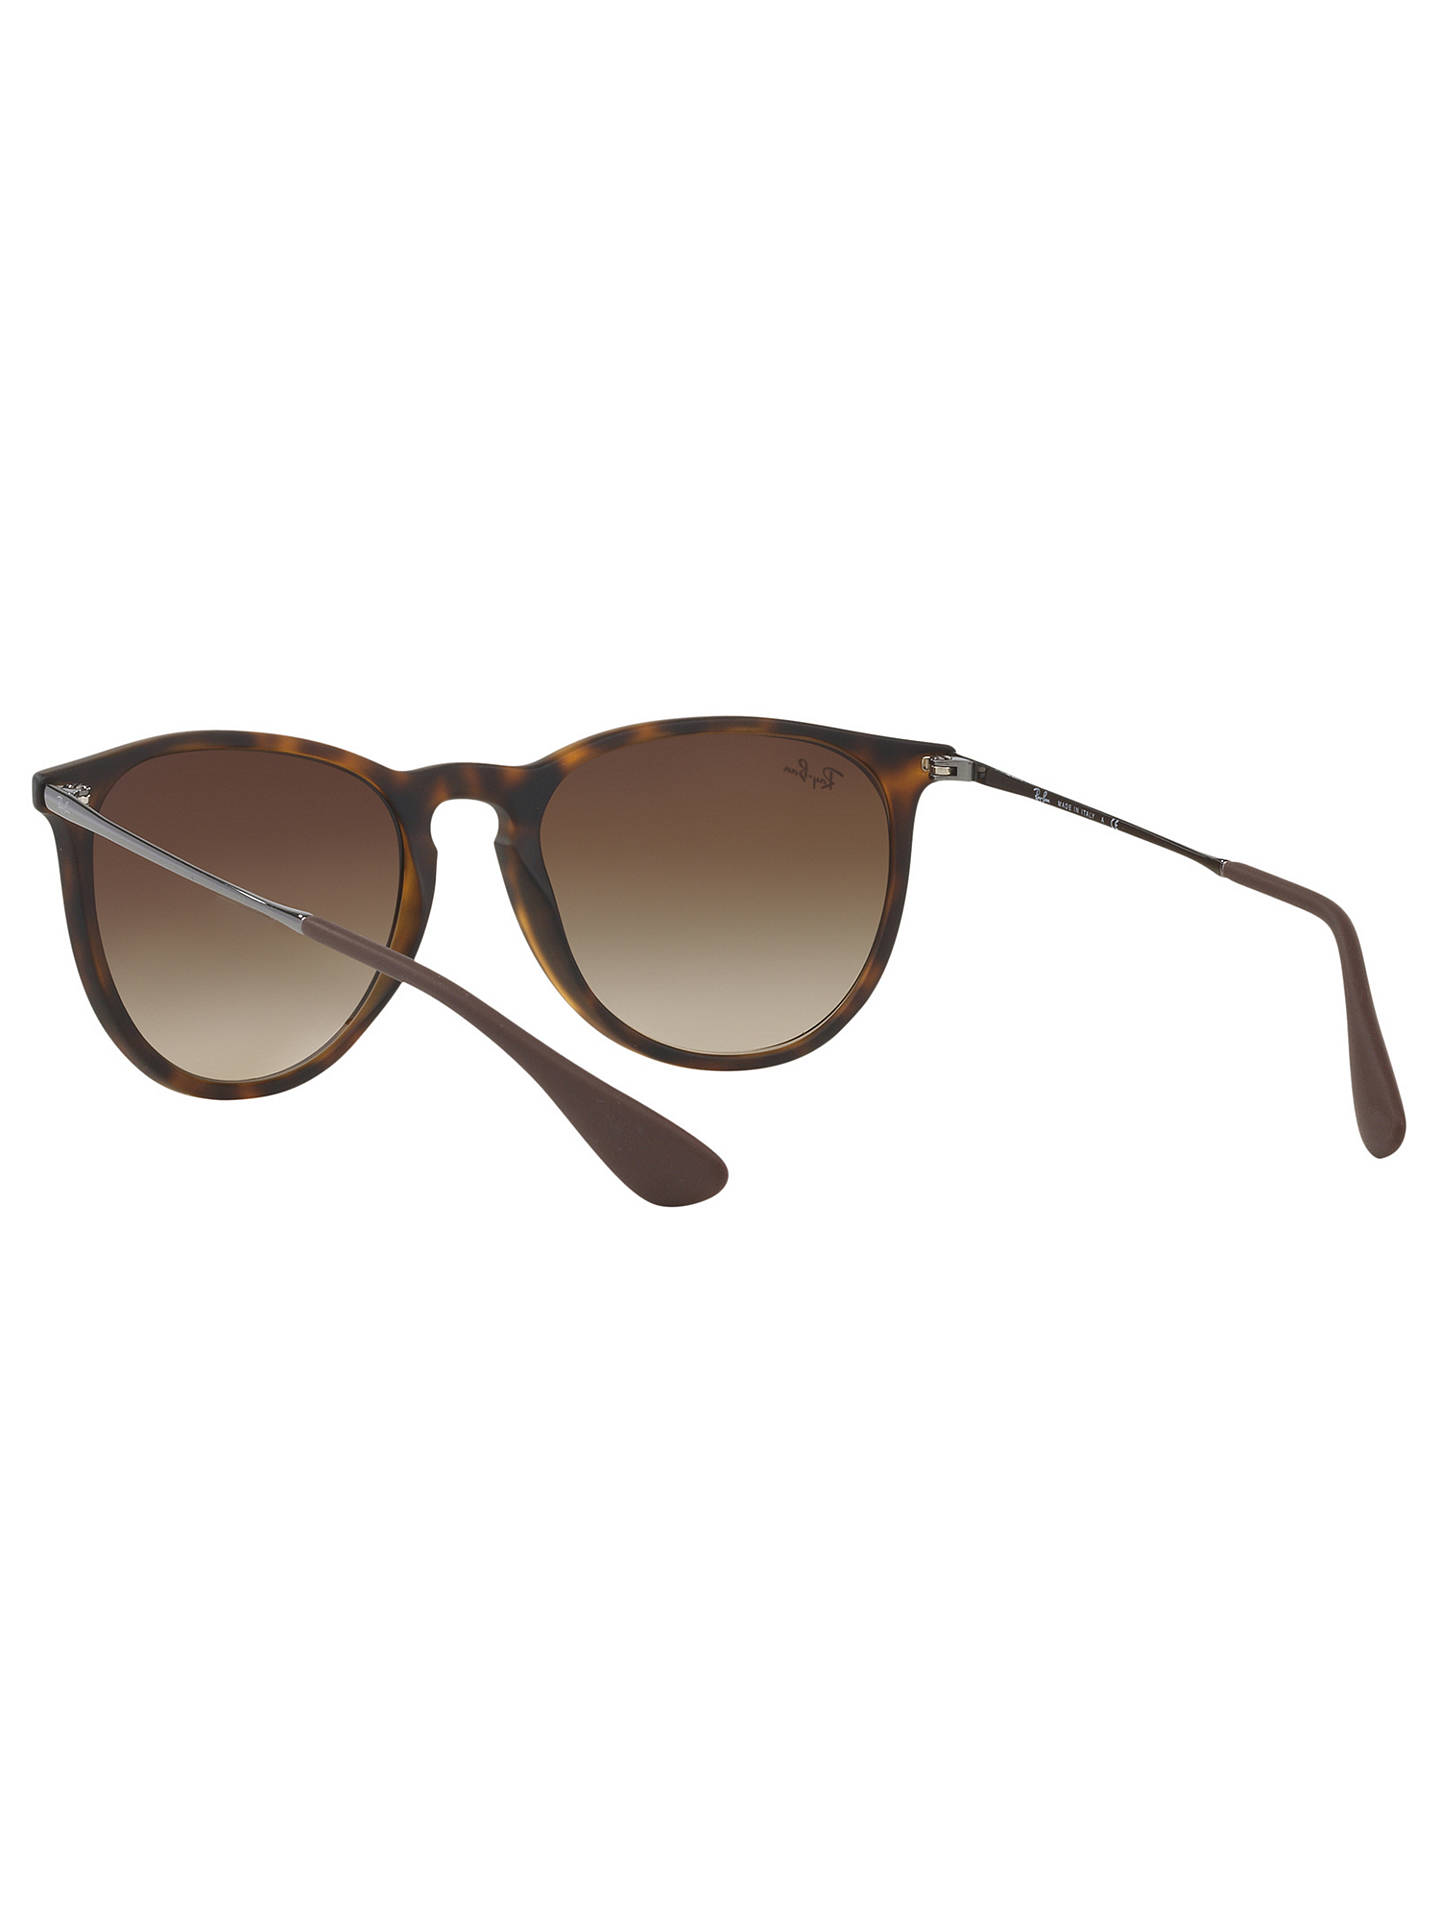 82099976ed0 ... Buy Ray-Ban RB4171 Women s Wayfarer Sunglasses